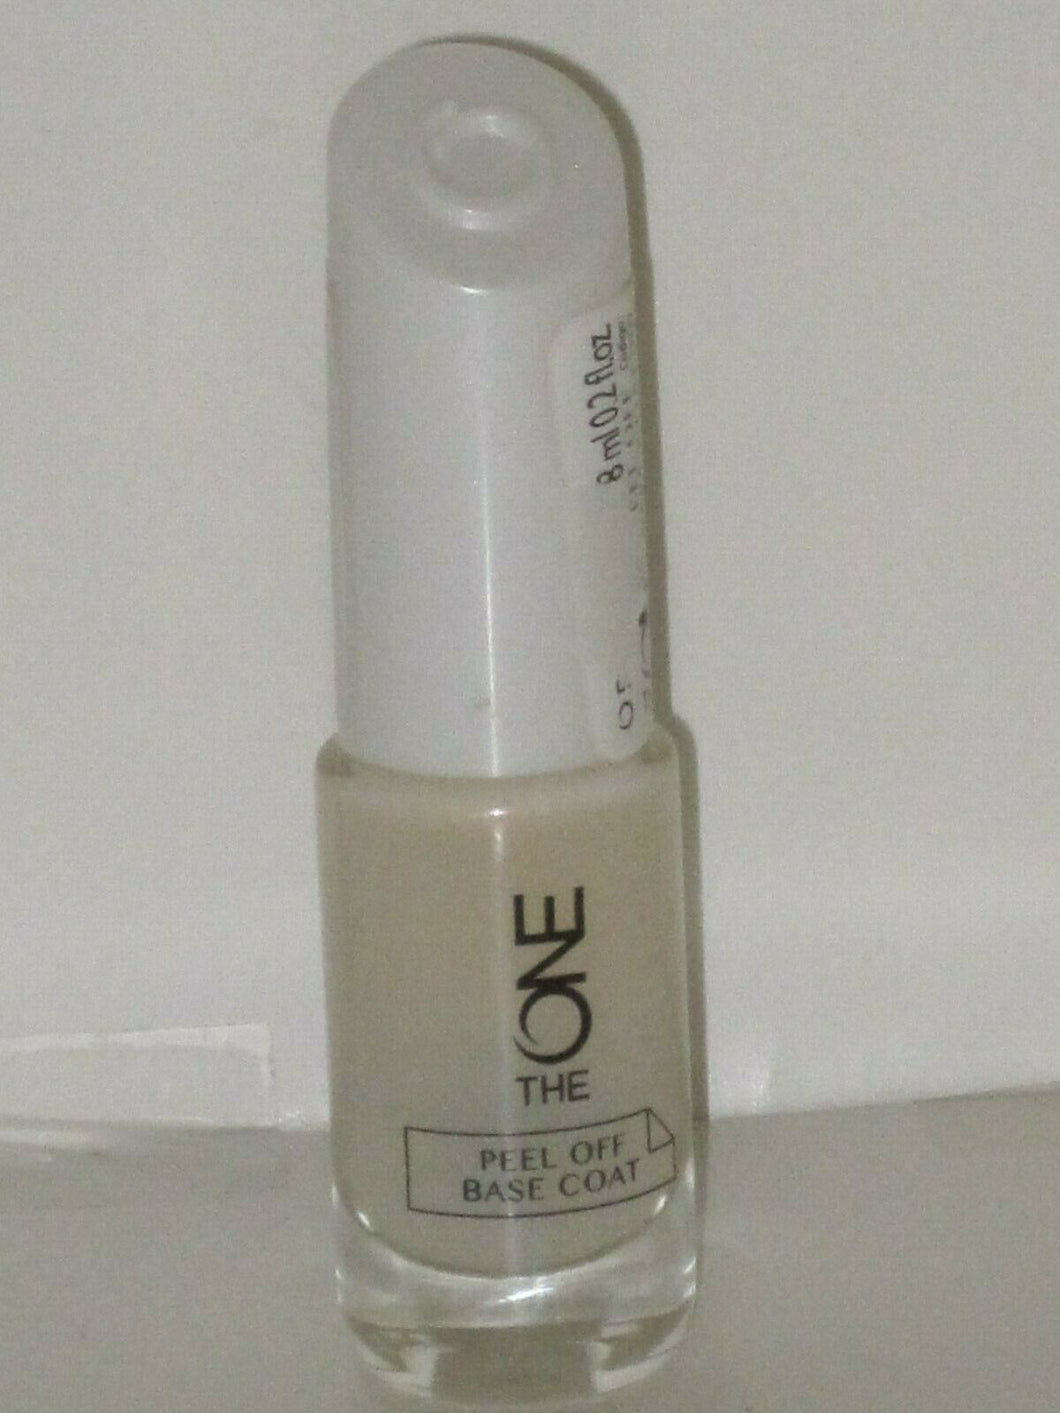 ORIFLAME SWEDEN THE ONE PEEL-OFF BASE COAT  8 ml./ 0.2 fl.oz. NEW!